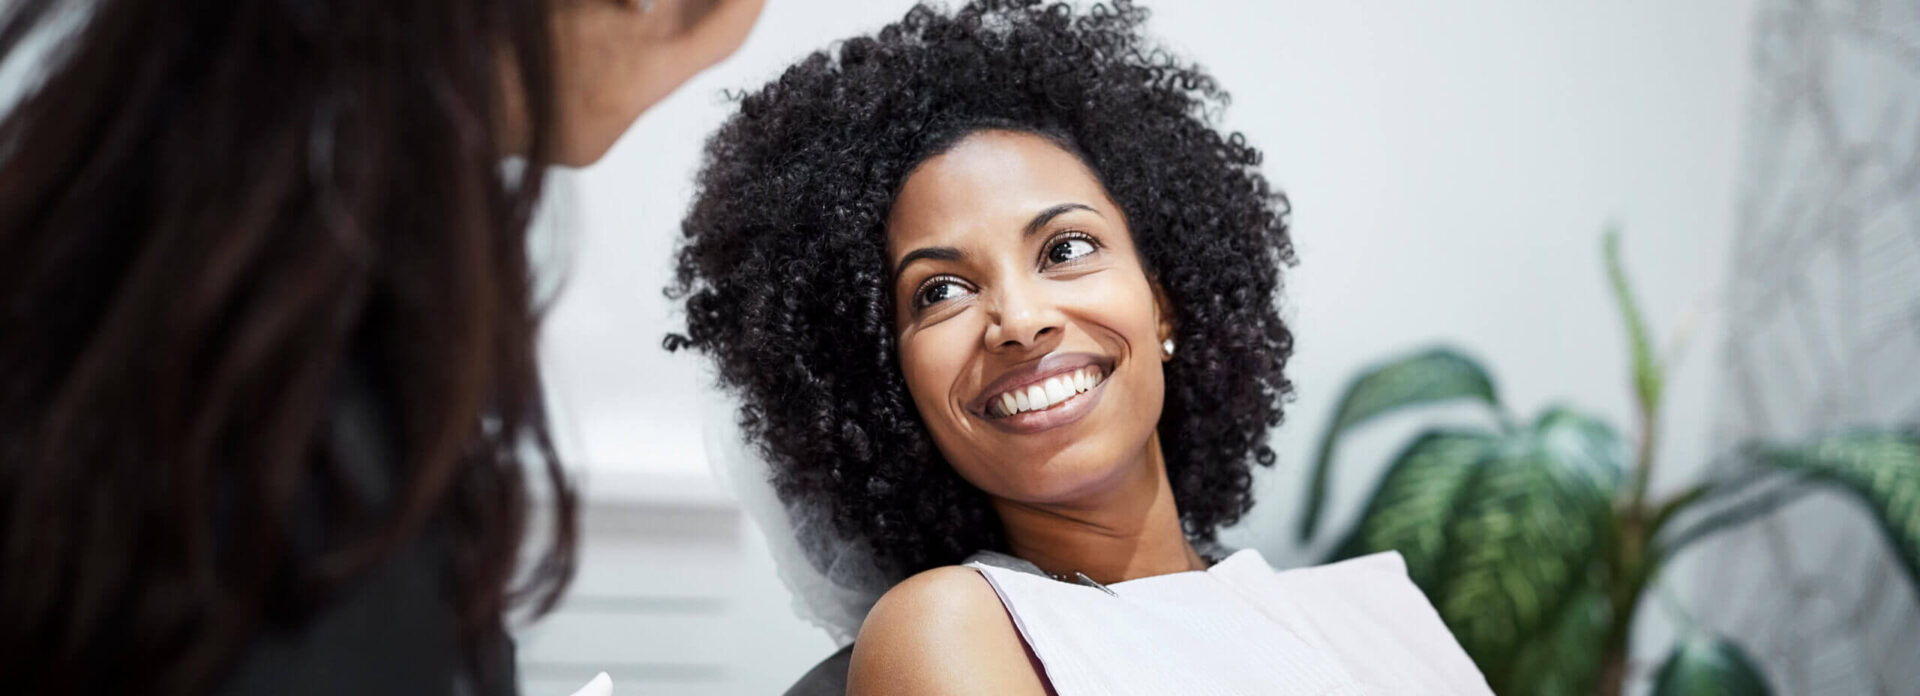 smiling woman speaking with her dentist